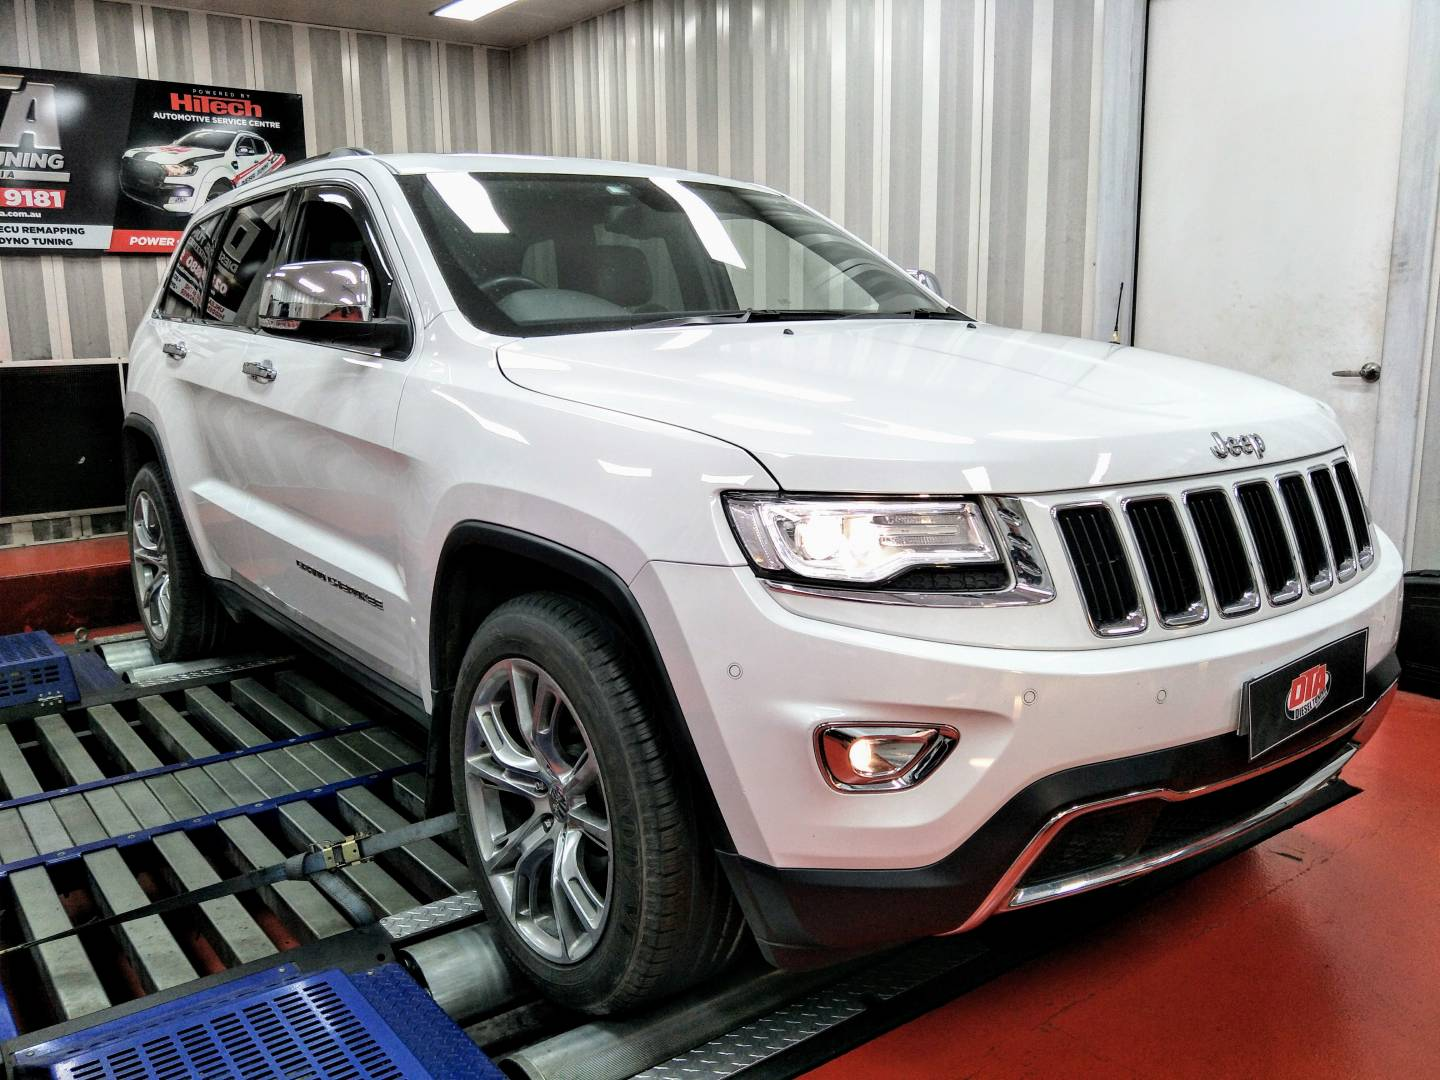 jeep grand cherokee 3 0l 184 kw ecu remap diesel tuning. Black Bedroom Furniture Sets. Home Design Ideas